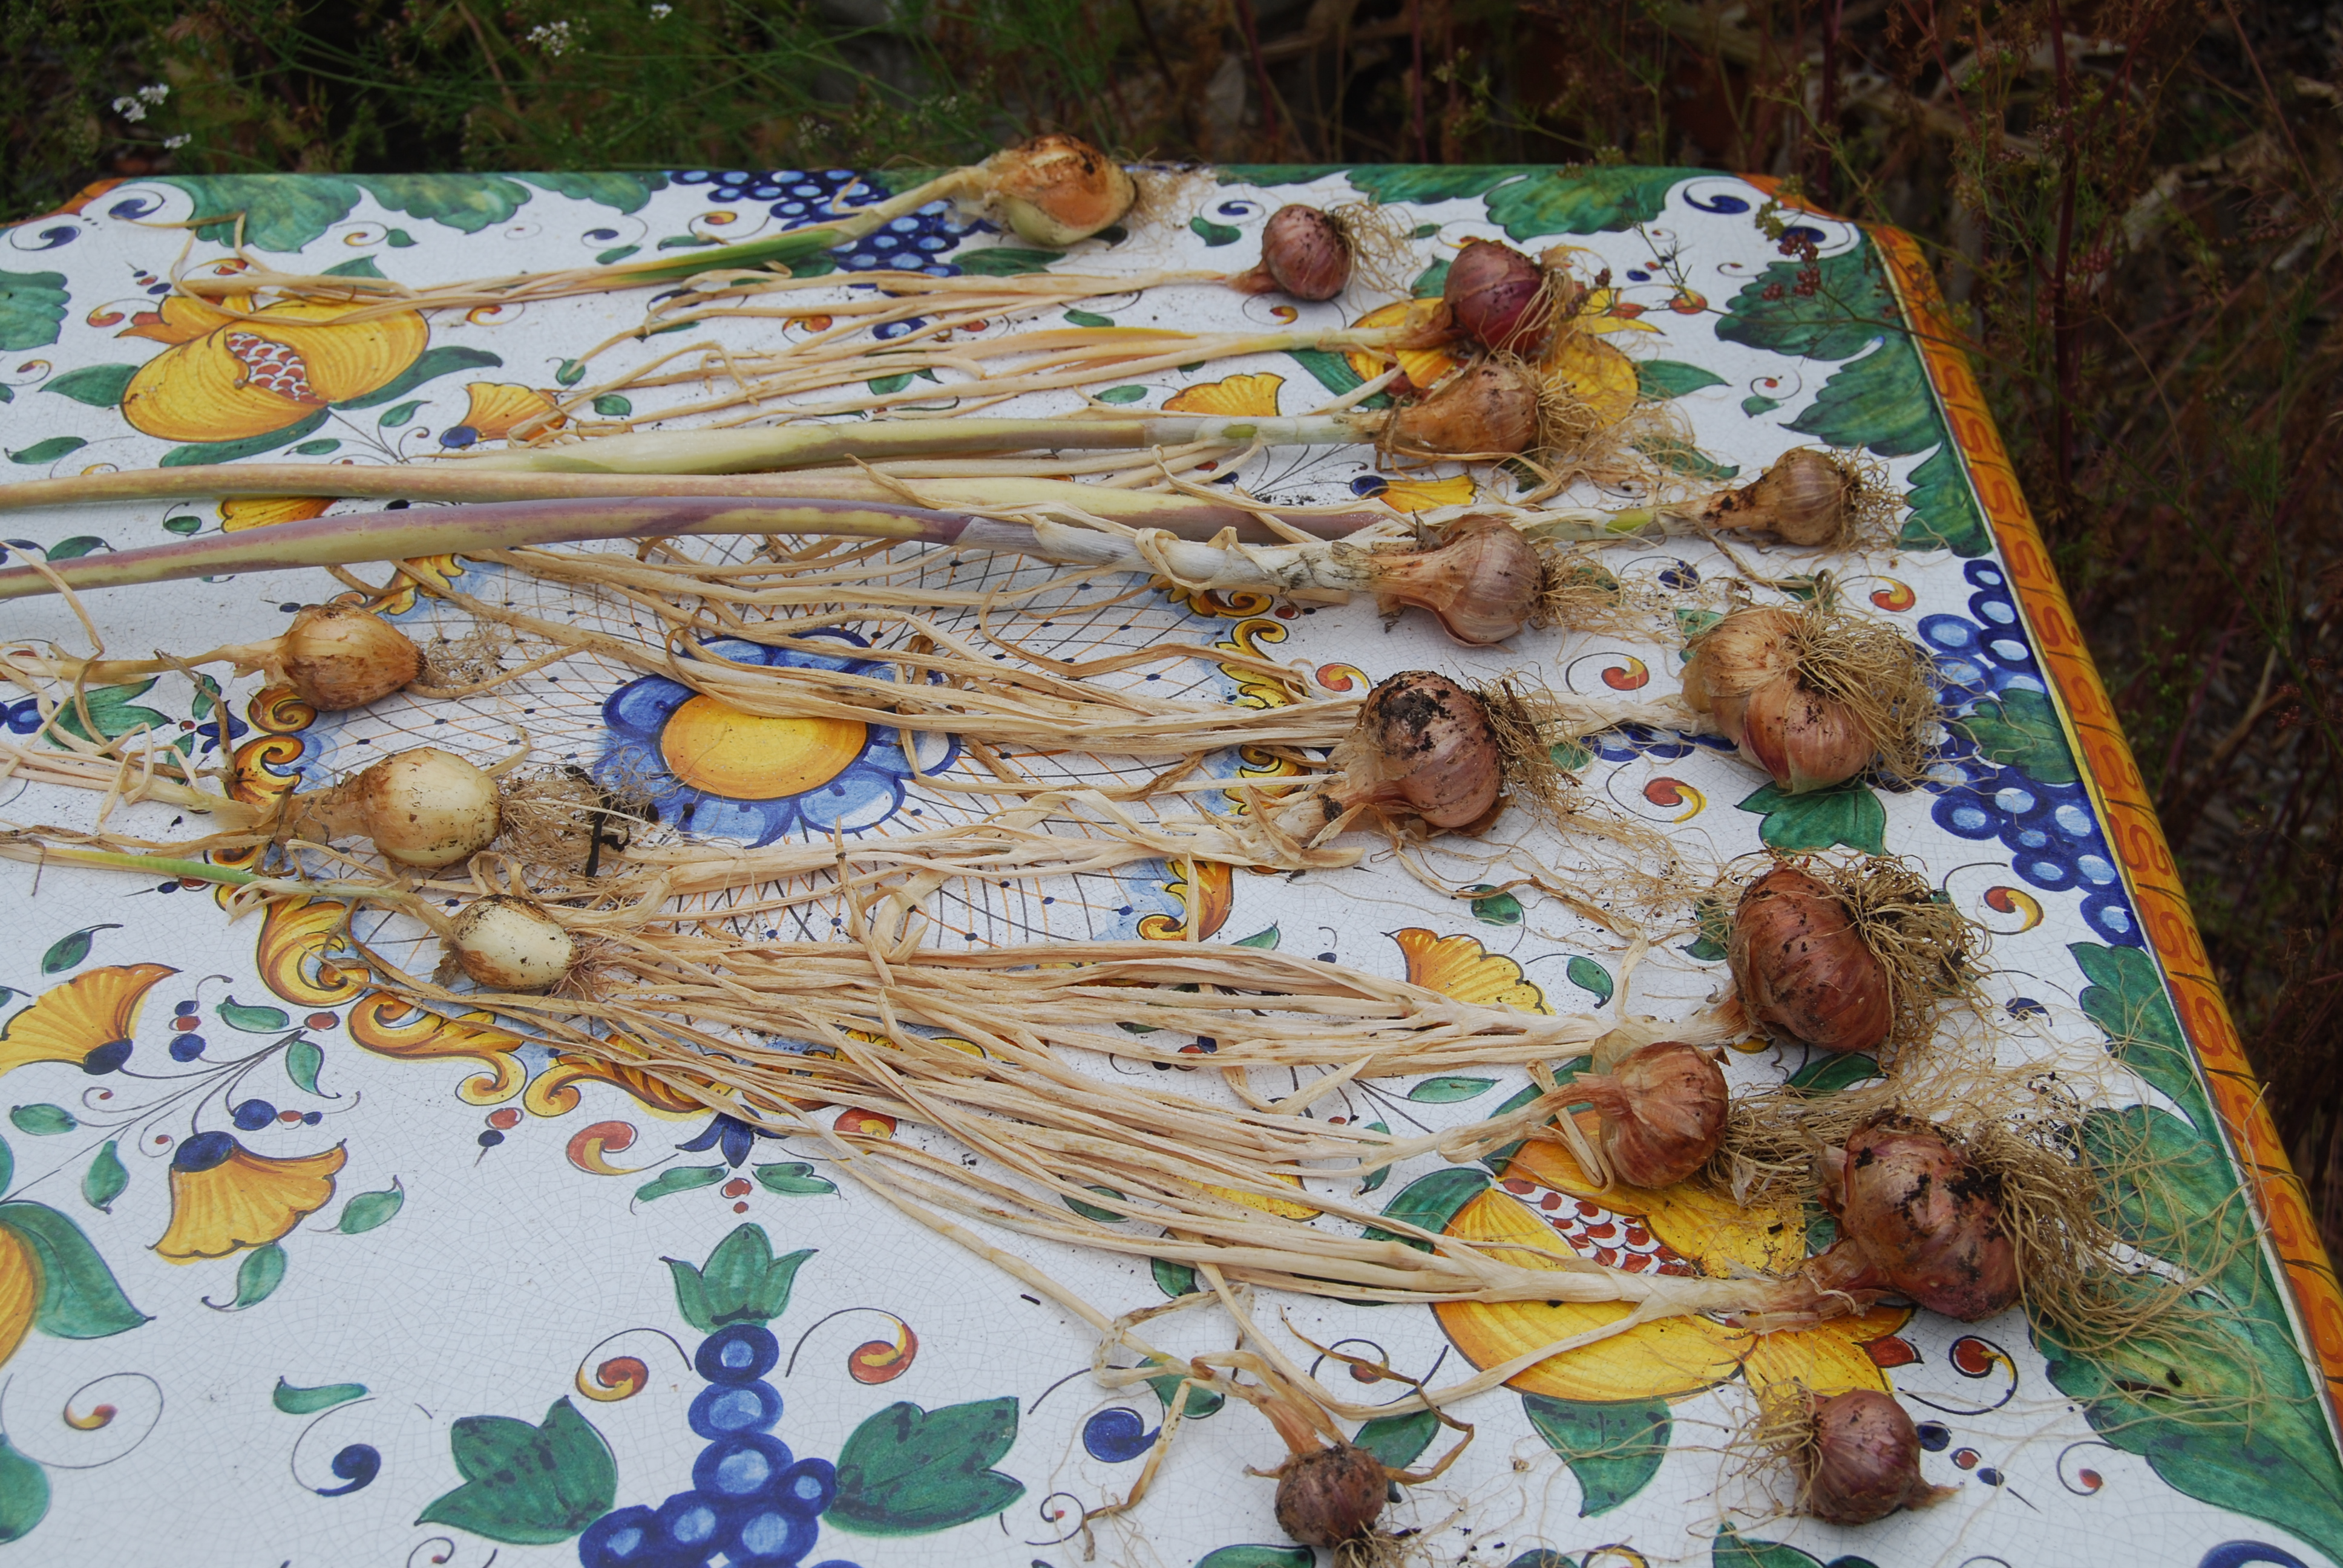 Drying down recently harvested onions. Next they'll go indoors to complete curing before storage.